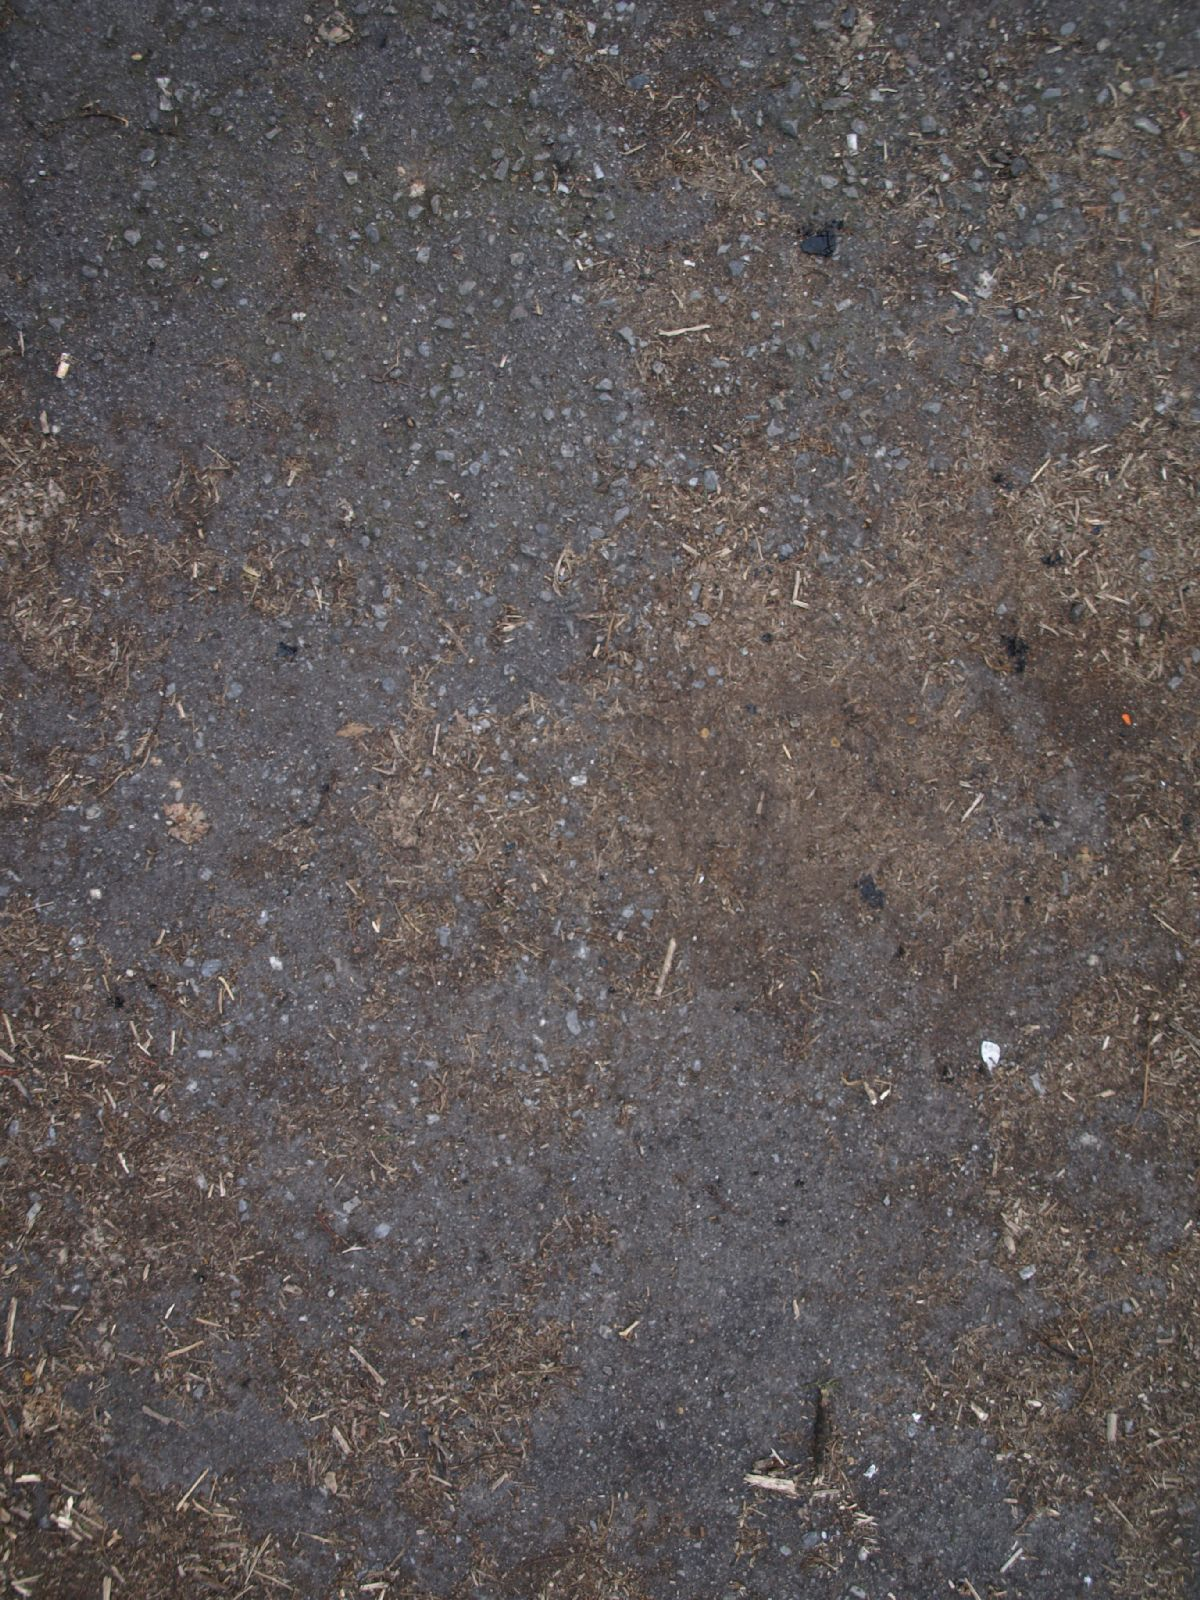 Ground-Nature_Texture_A_P4121005